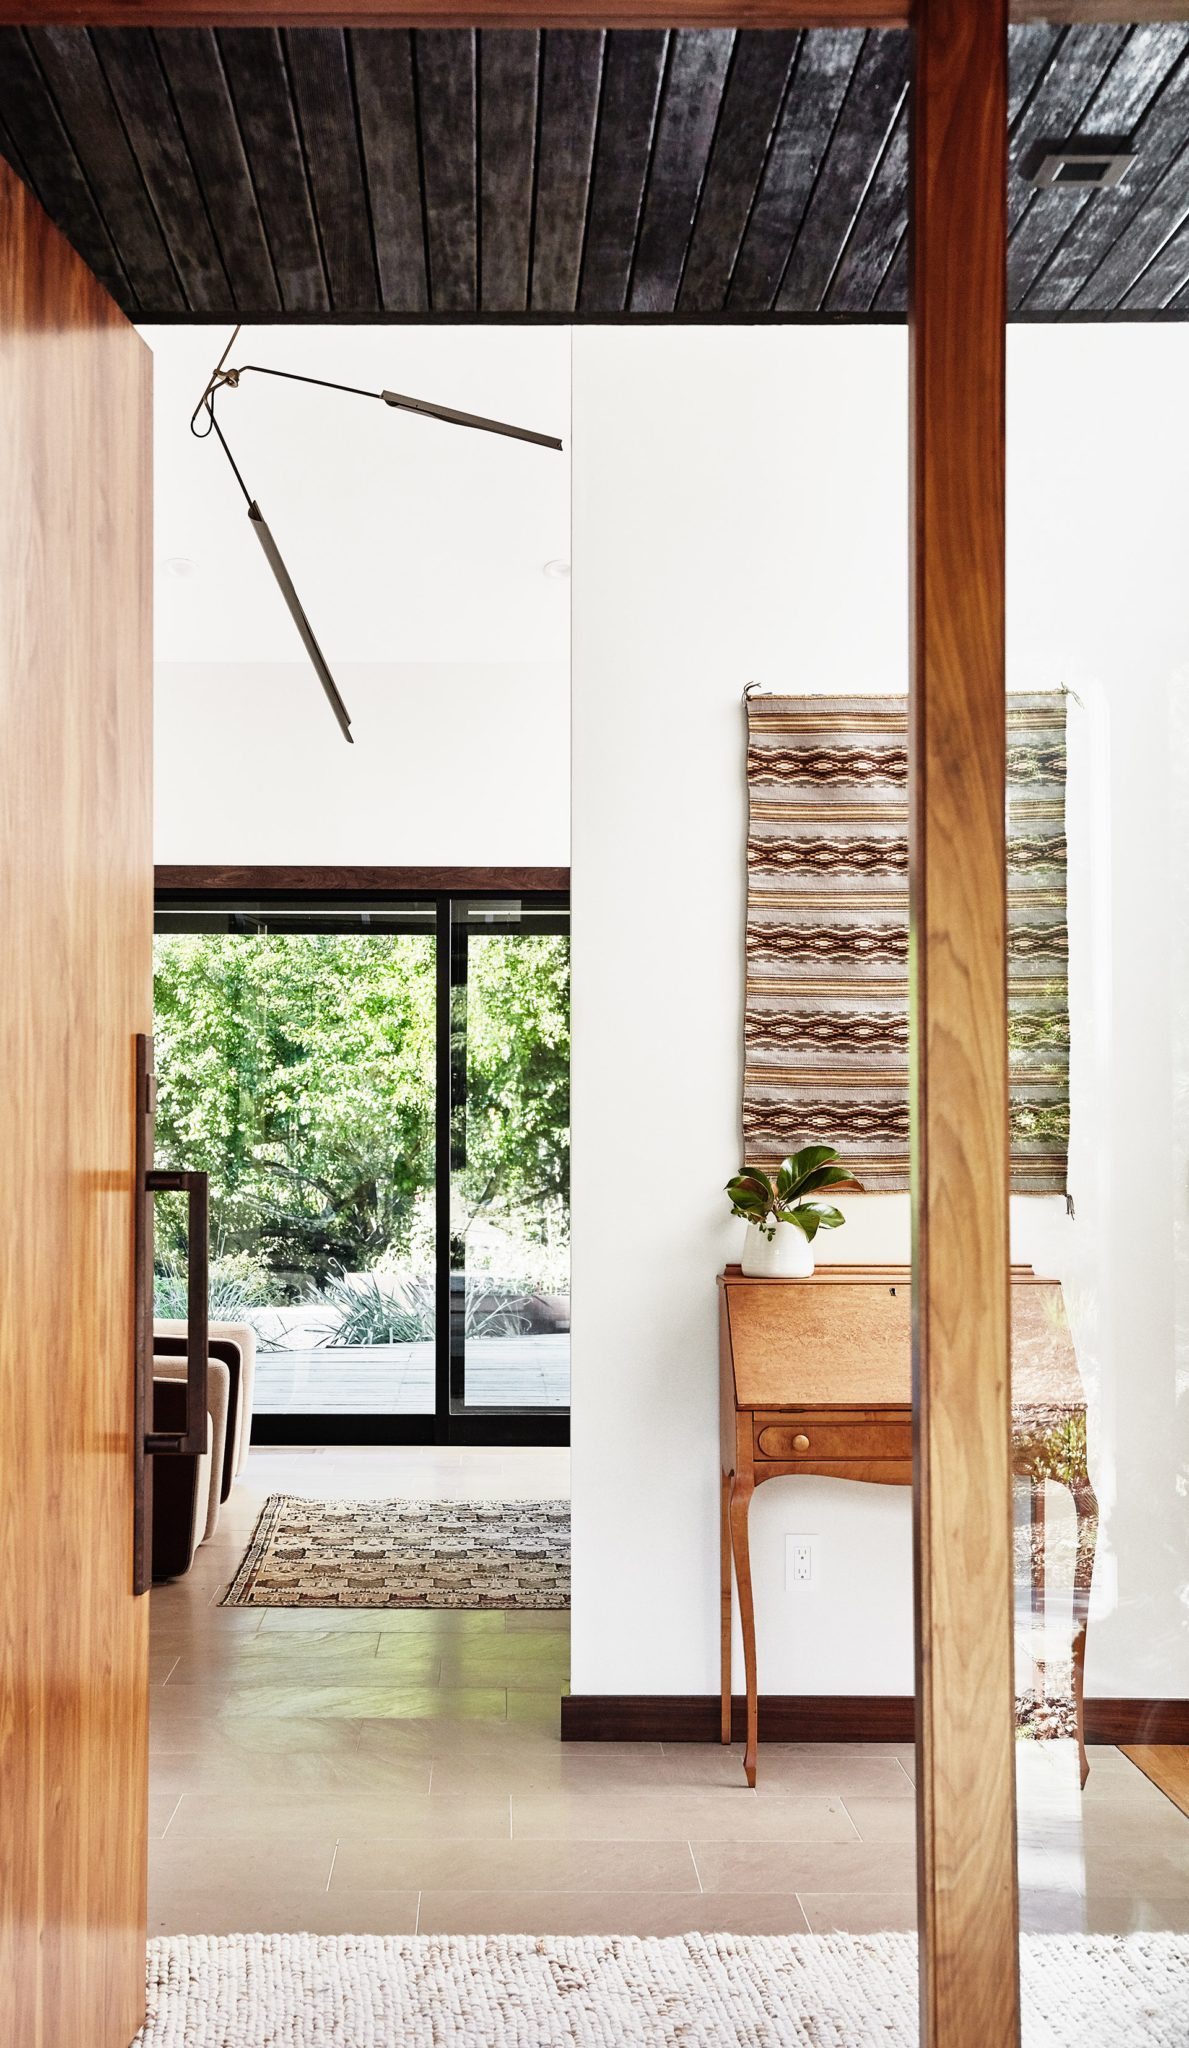 Soulful Home Entry with ceiling lined with charred wood(Japanese shou sugi ban) by Staprans Design